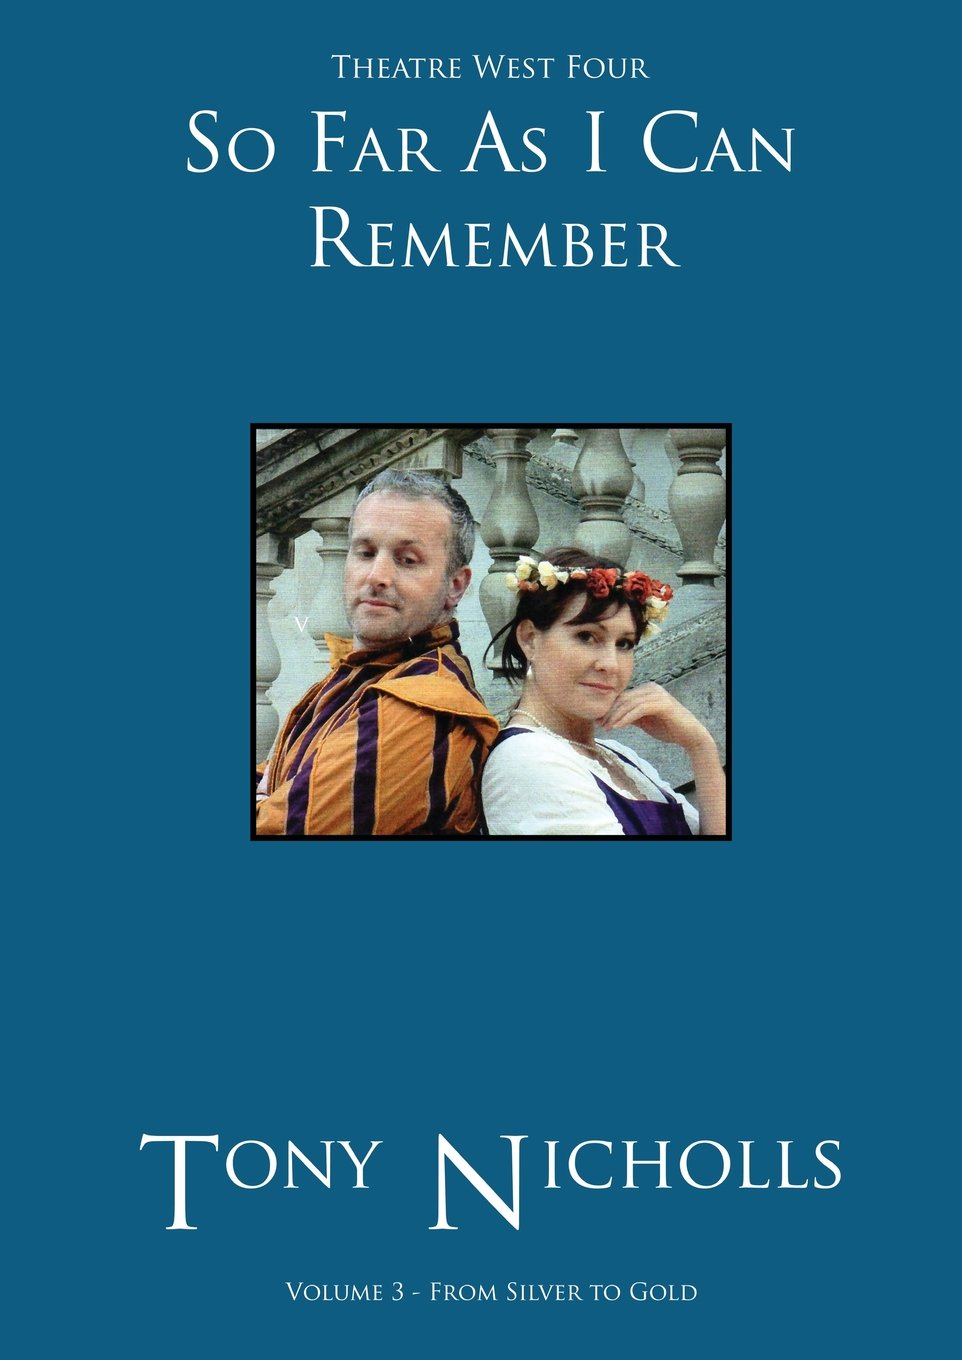 Read Online Theatre West Four - So Far As I Can Remember Volume 3 pdf